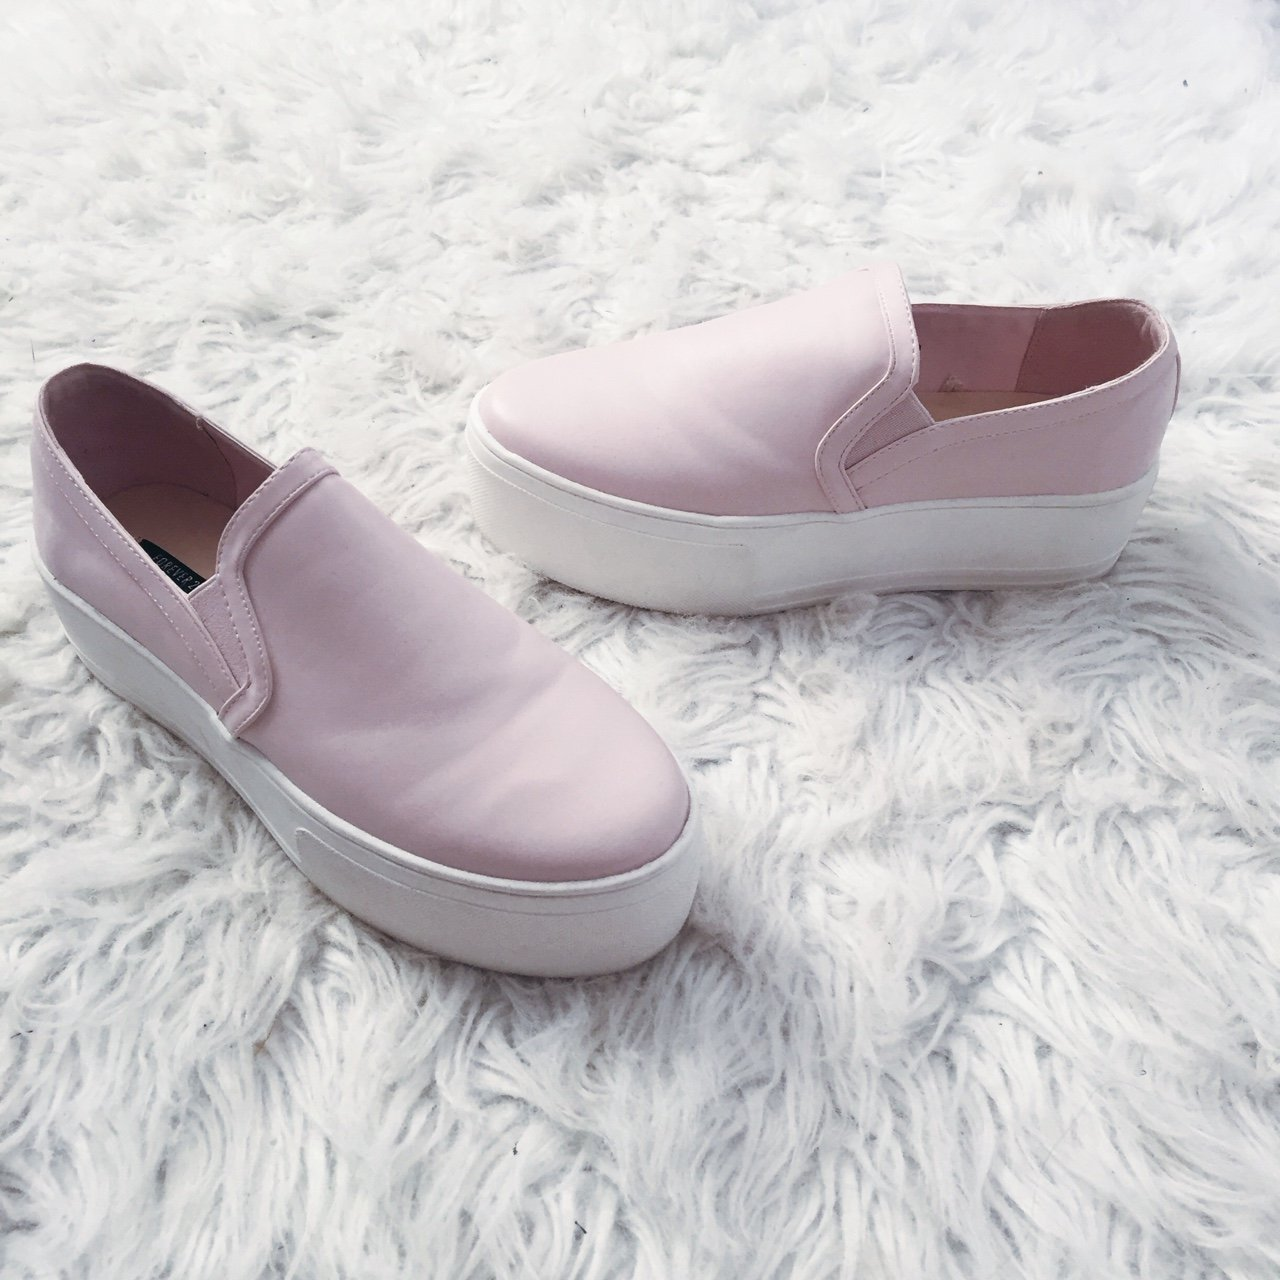 Forever 21 baby pink platform sneakers never worn - Depop 58e759a7c7